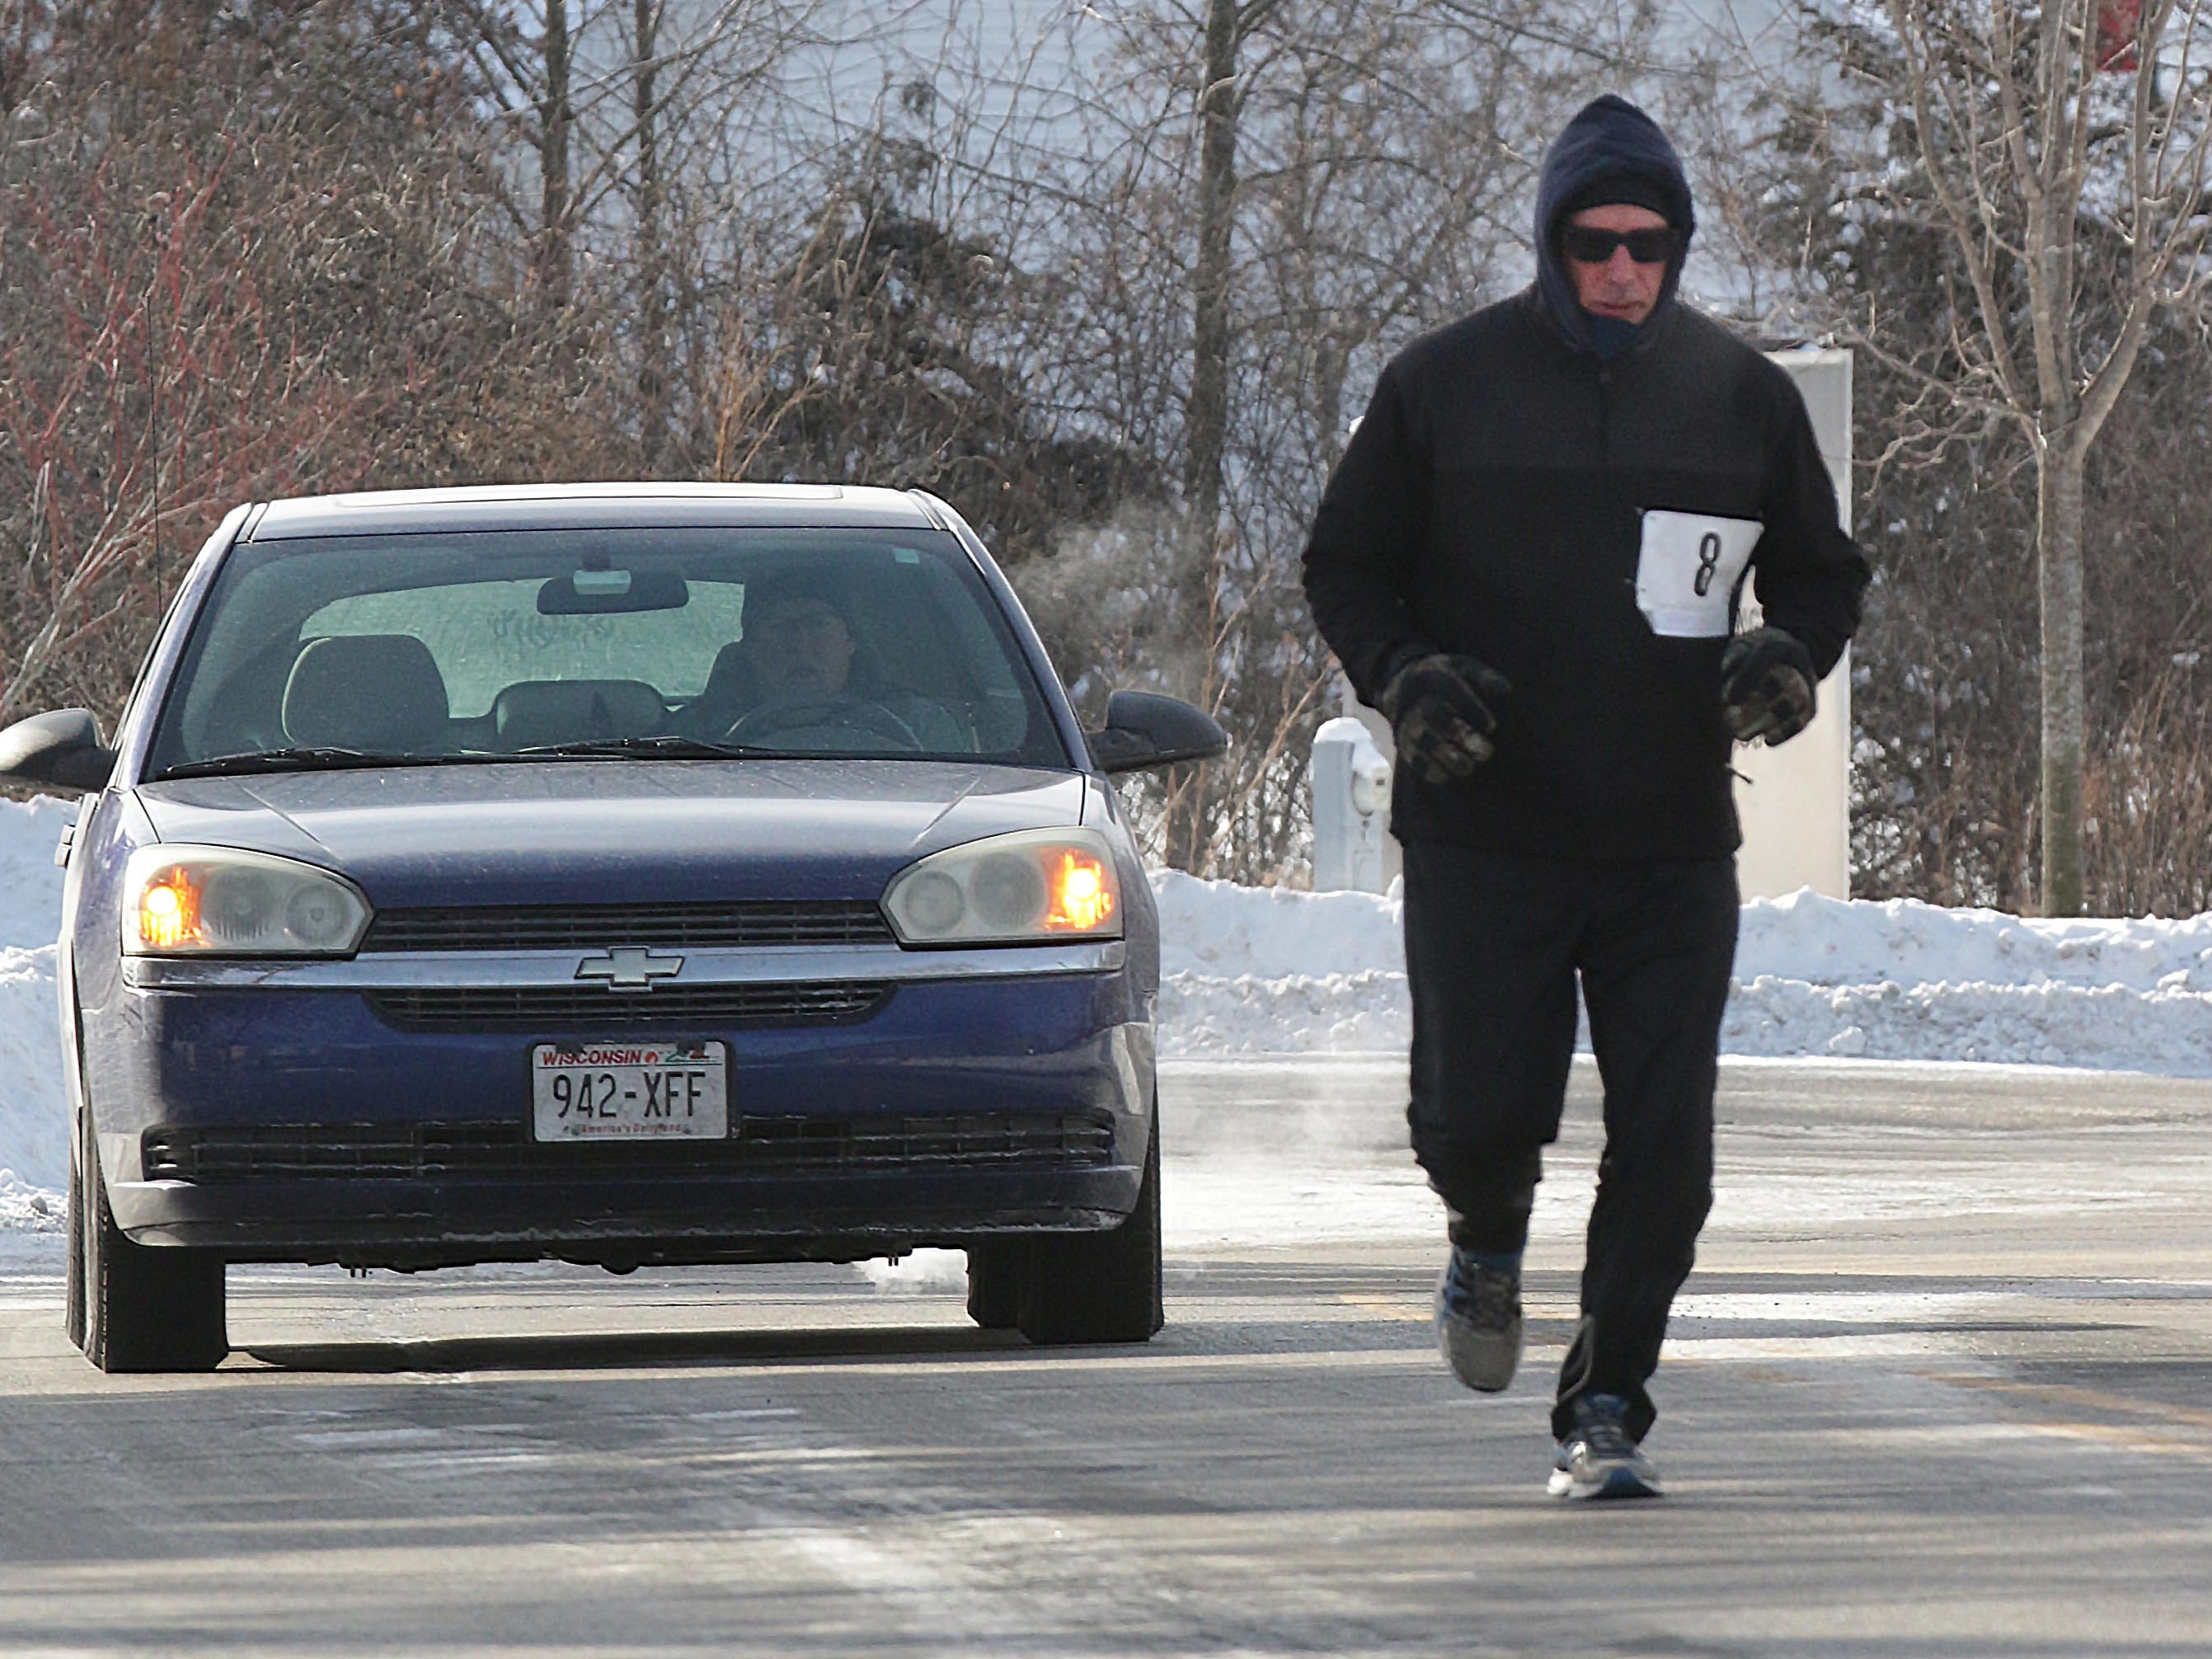 Matt O'Connor (8) of Plymouth, Wis., runs in the 2-miles Schneelauf Run, Saturday, January 26, 2019, in Elkhart Lake, Wis. The event is part of Schnee Days in Elkhart Lake. O'Connor's time was 18:55 at the event.